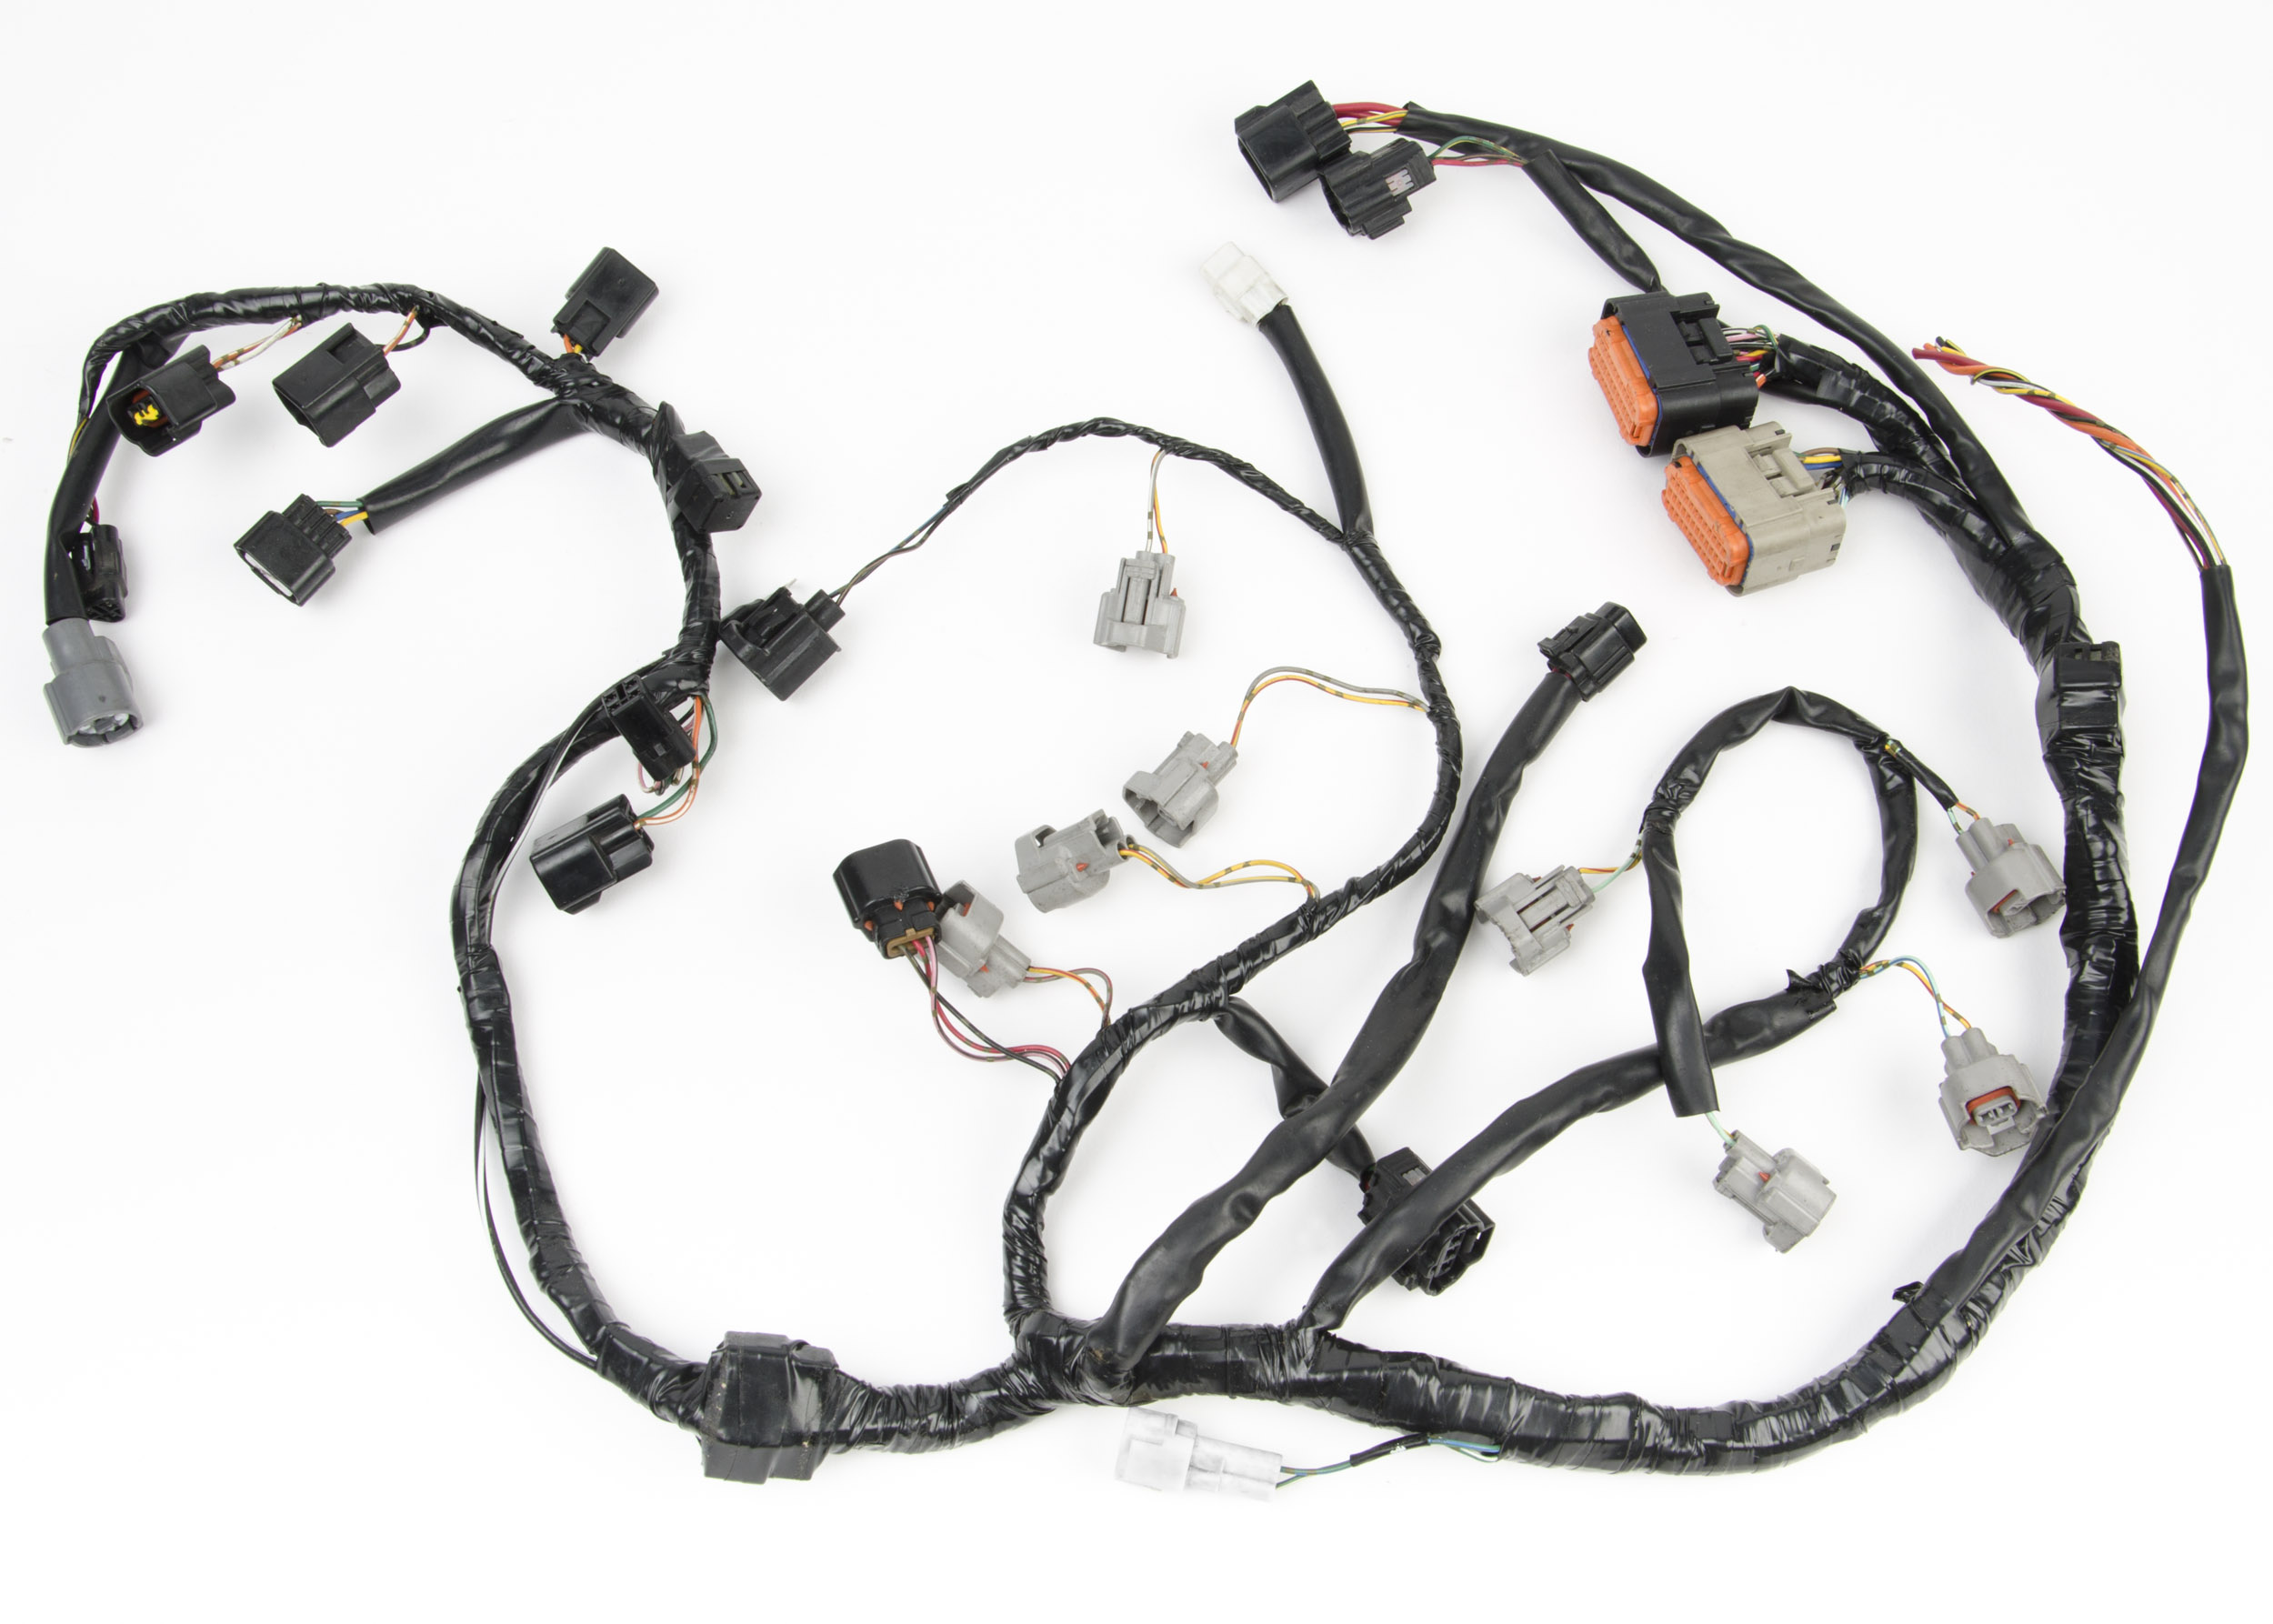 600-449 Yamaha R Wiring Harness Diagram on